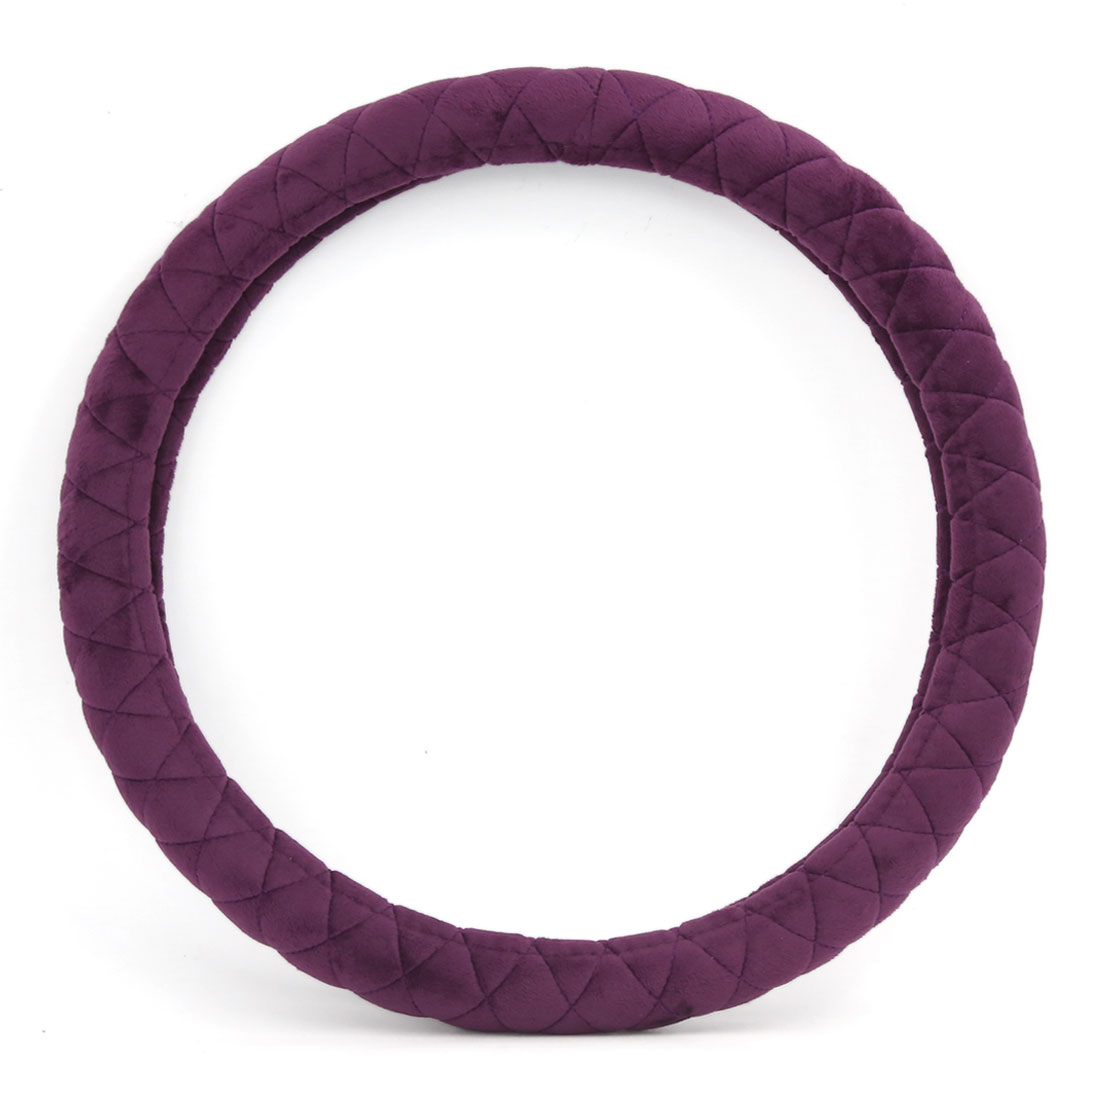 "Purple Winter Warm Fuzzy Soft Plush Steering Wheel Cover 15"" Dia for Car Auto"